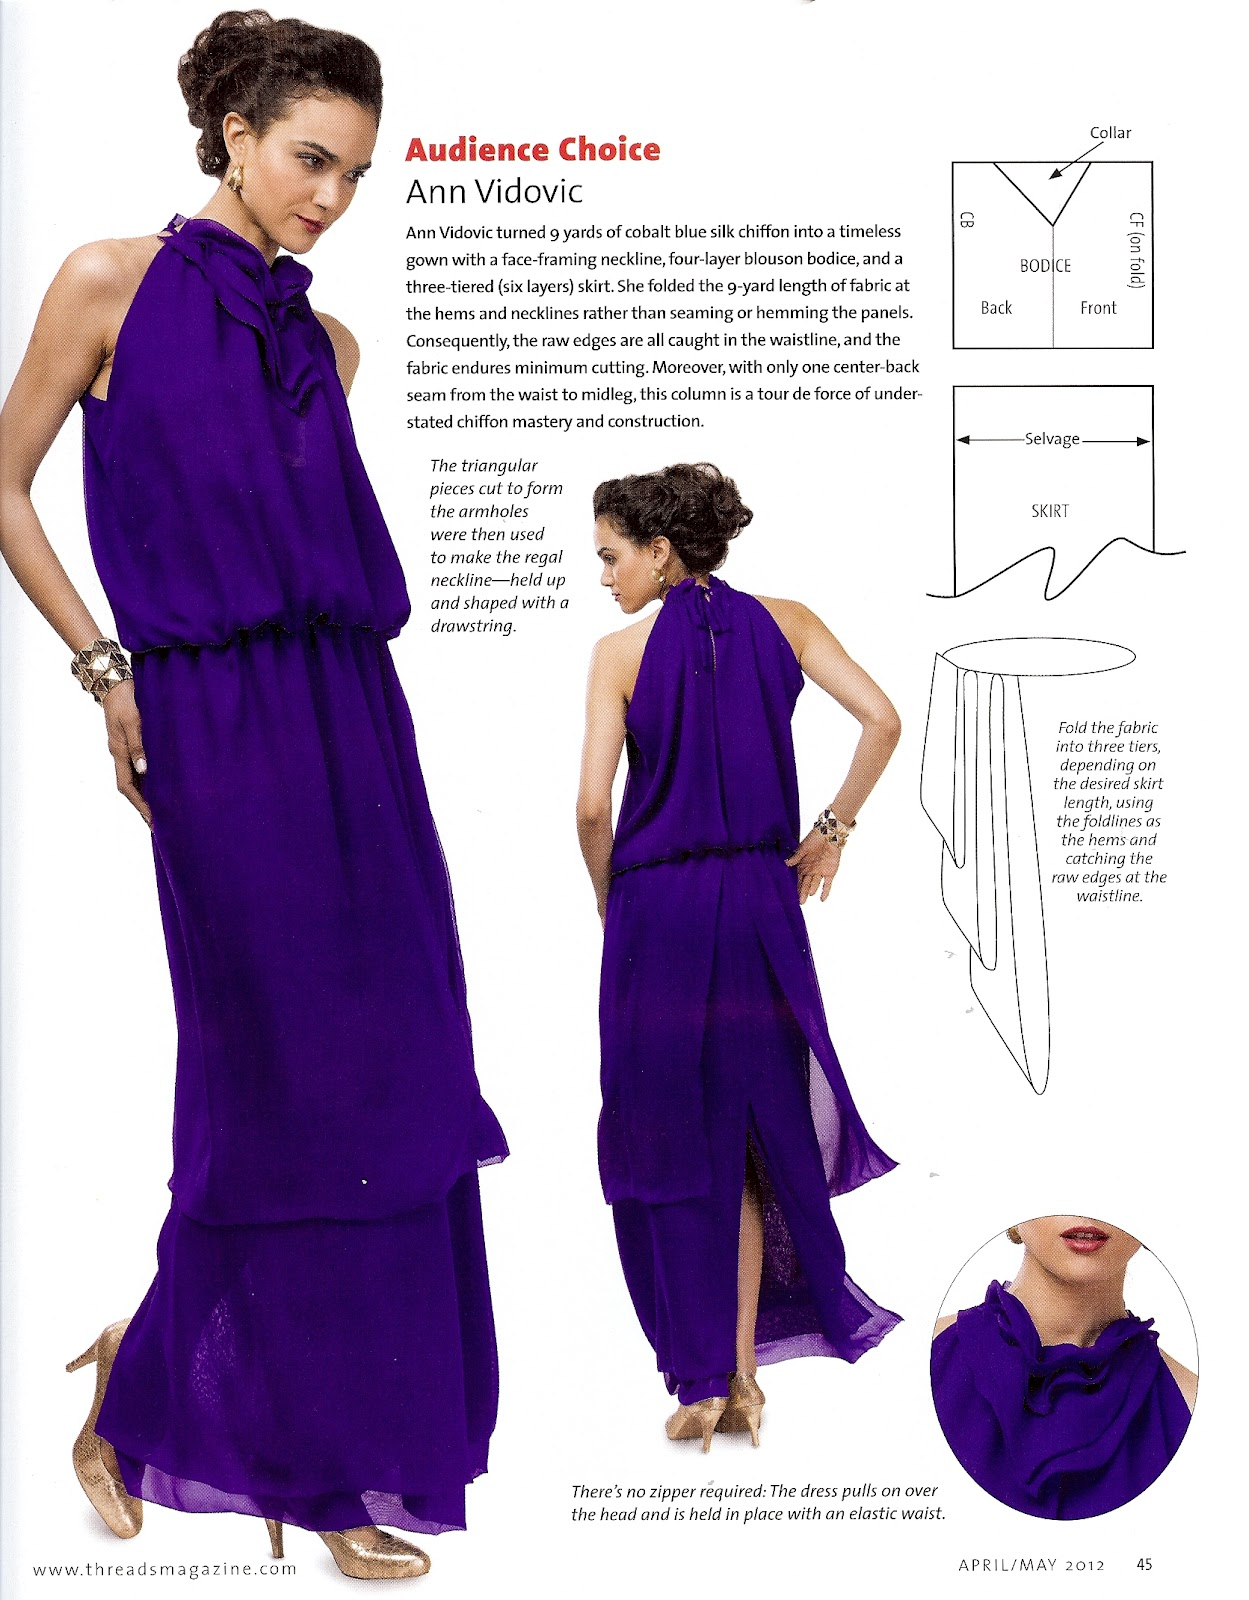 Did You Really Sew That?: Zero Waste Evening Gown